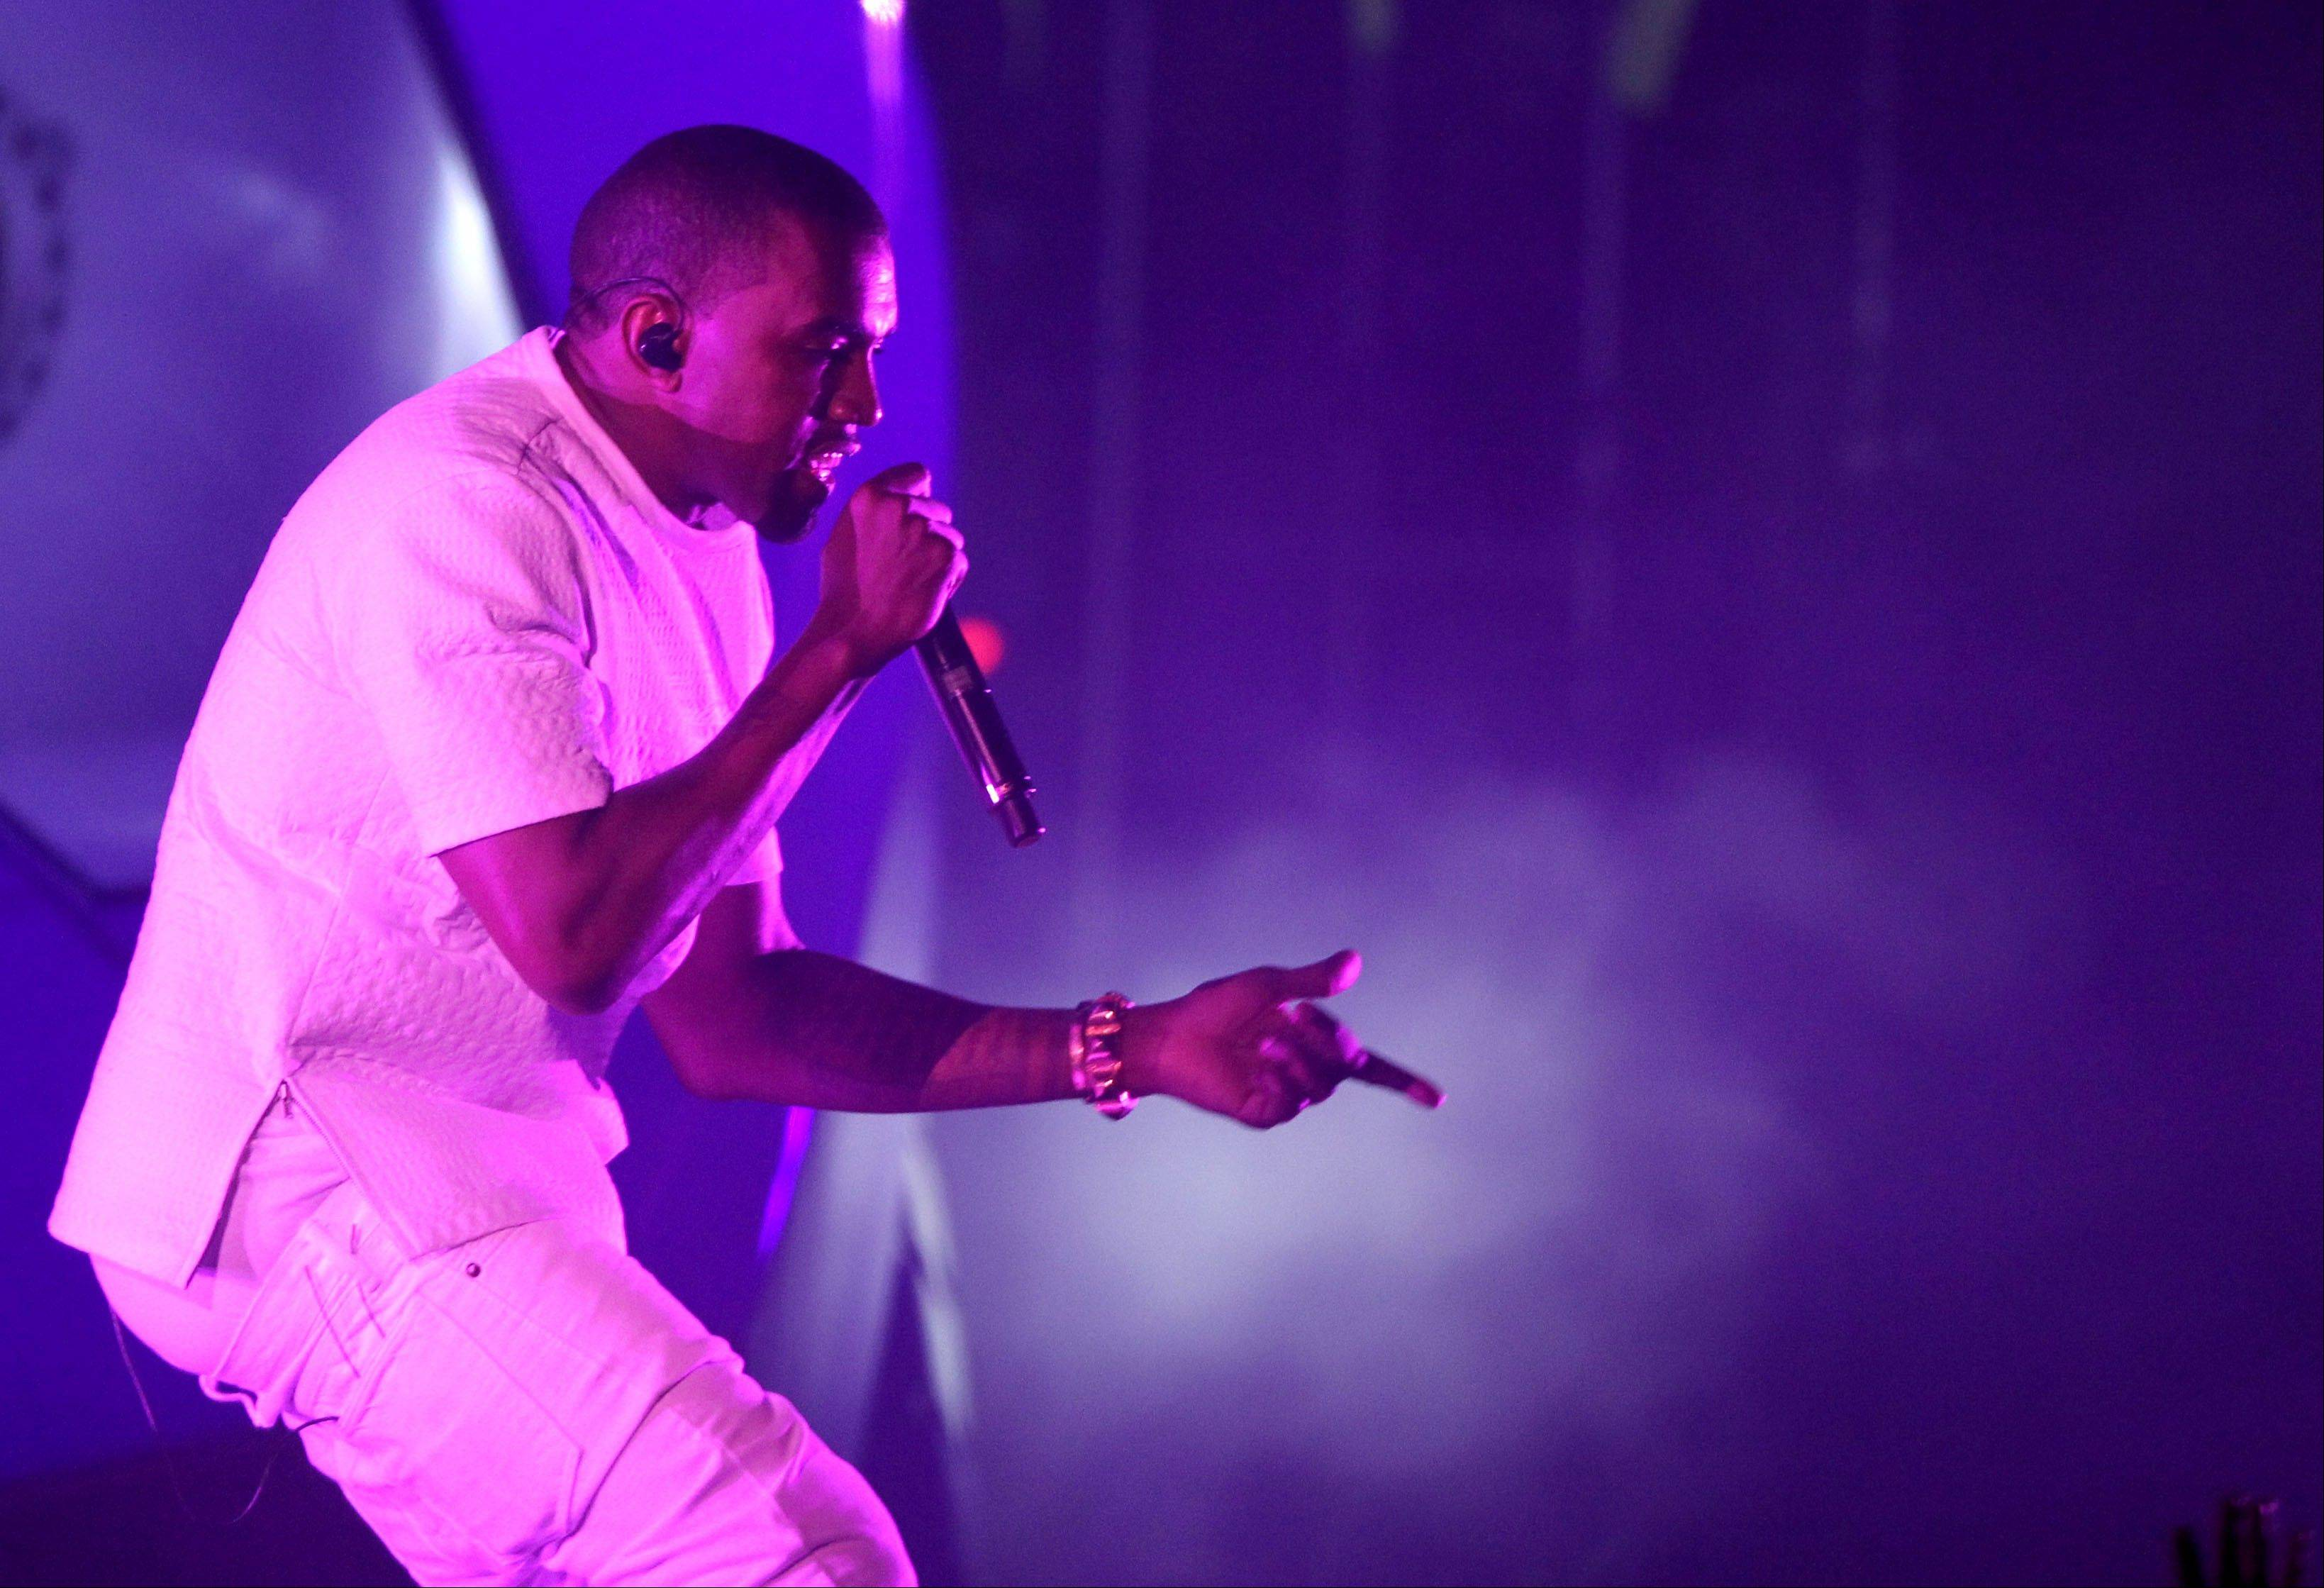 Kanye West headlines the Chicago's United Center next week.